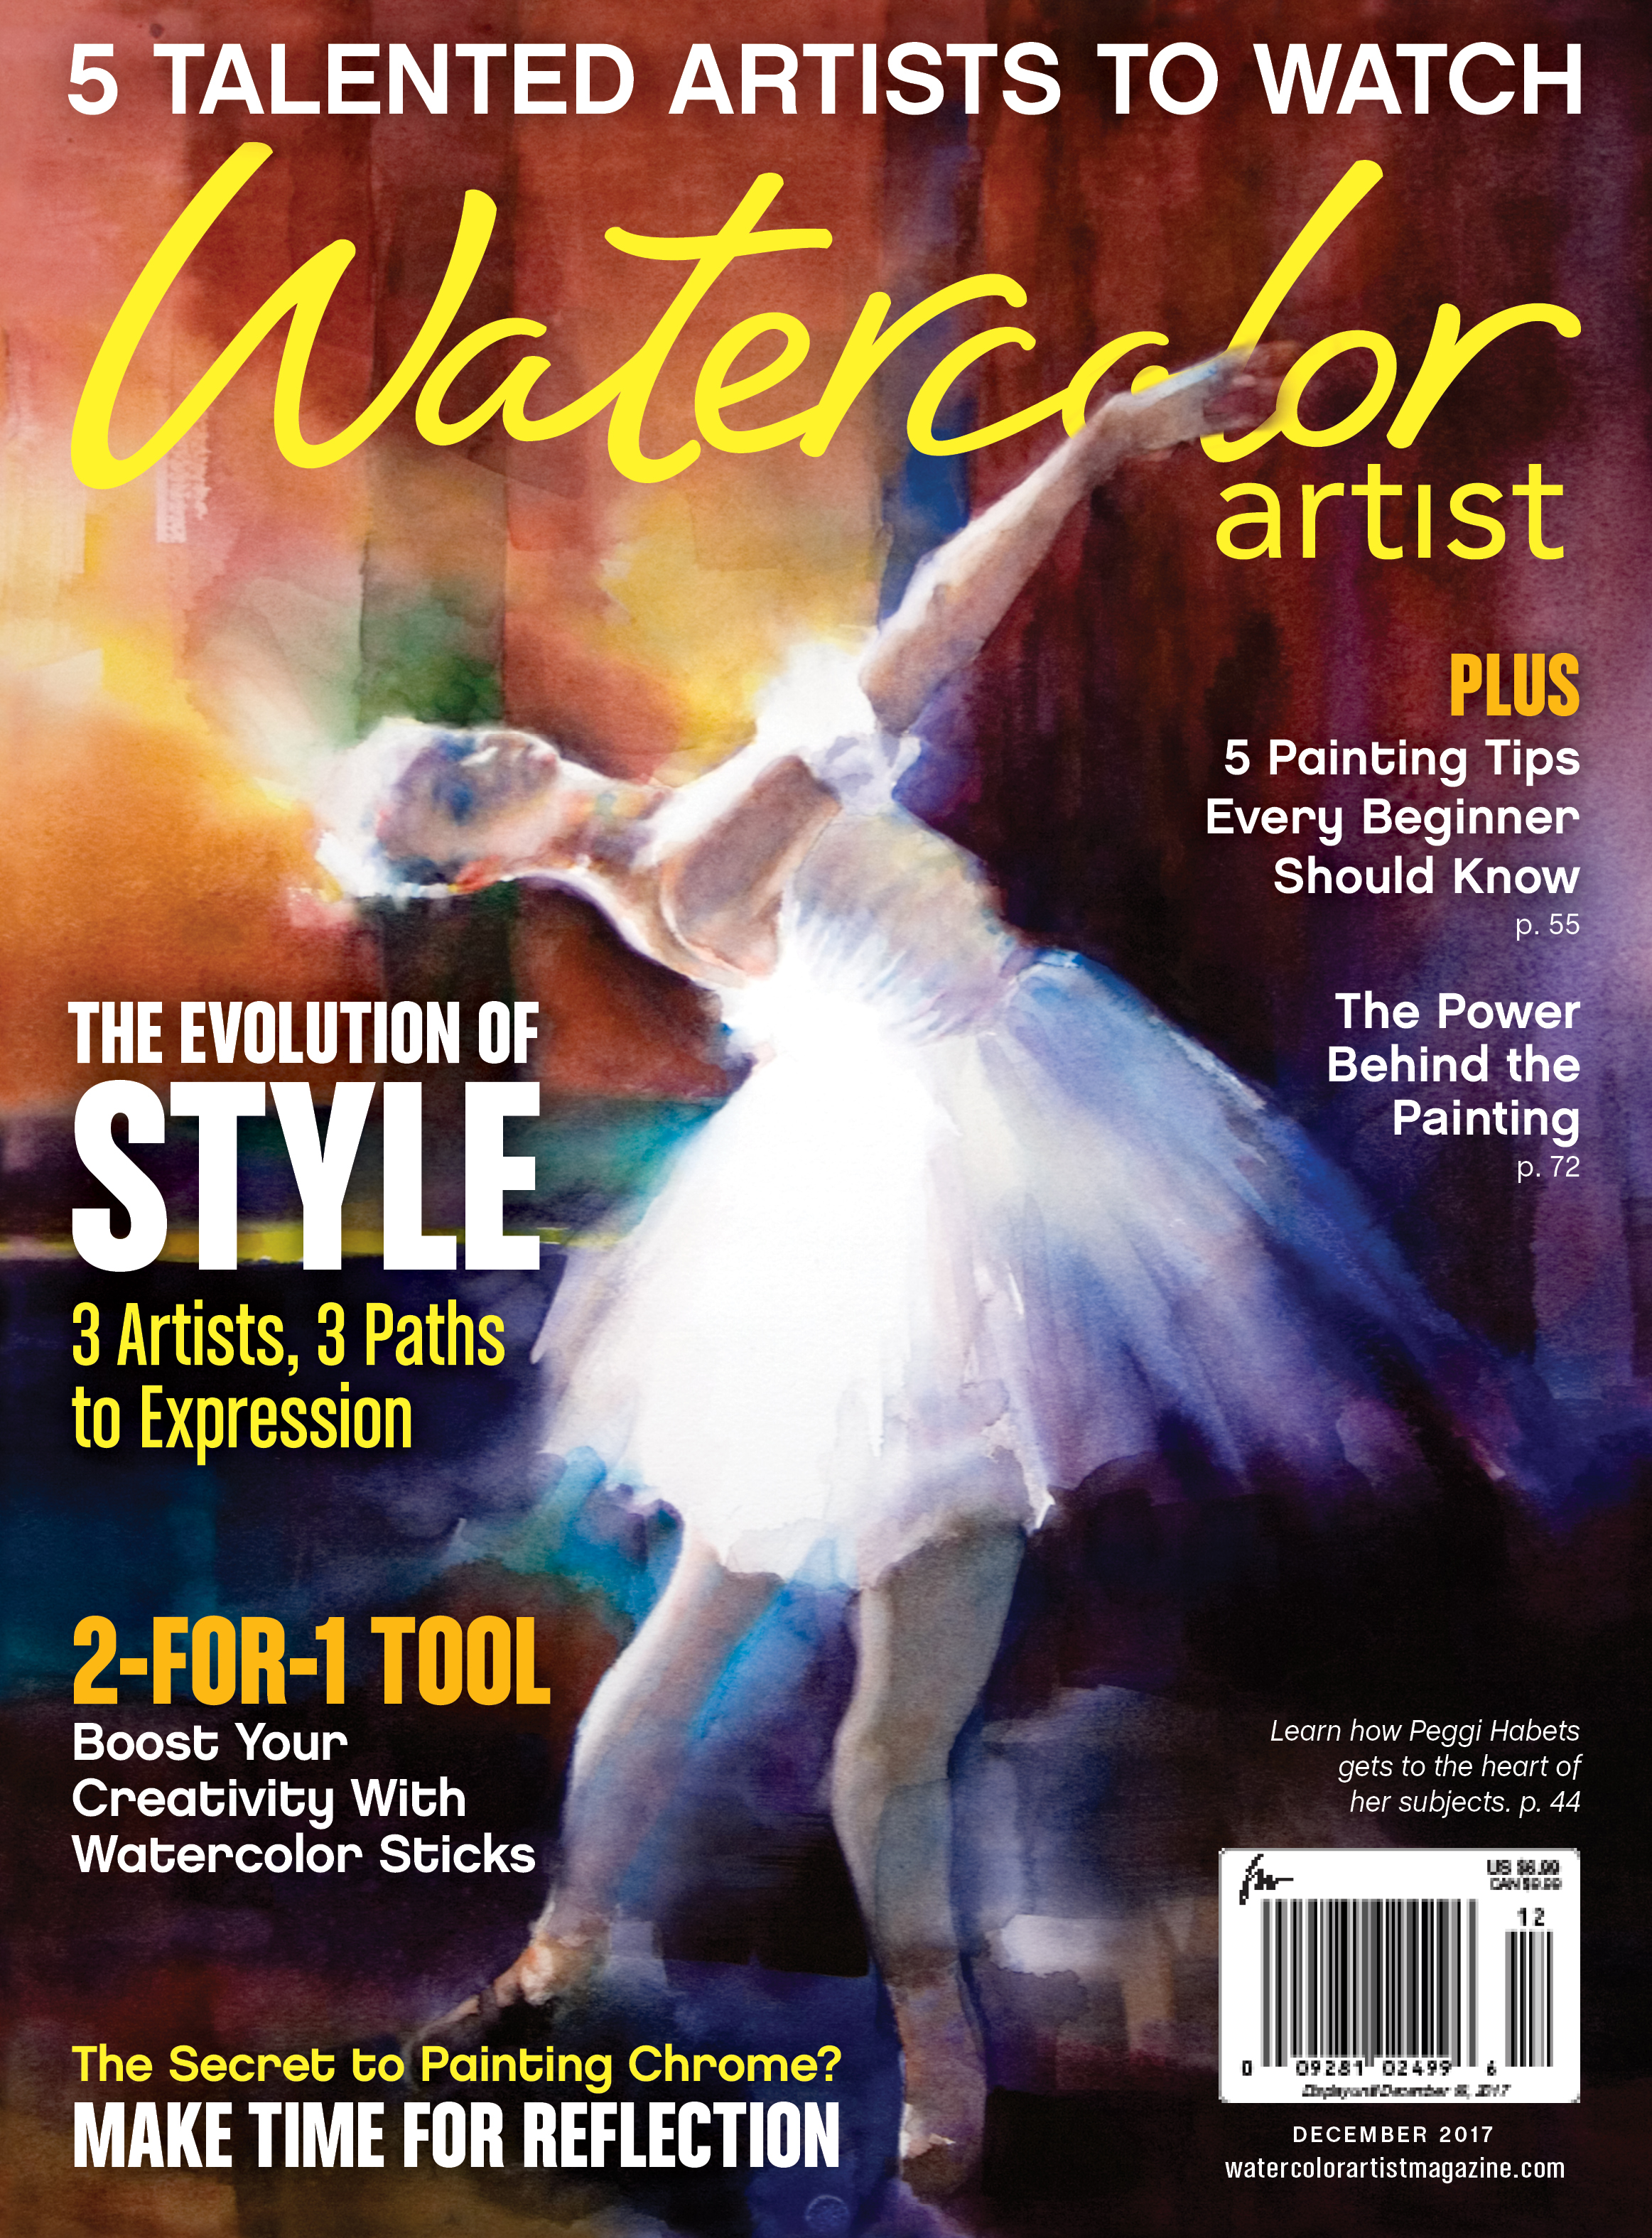 Watercolor artist magazine review - Feature Article And Cover In December 2017 Issue Of Watercolor Artist Magazine